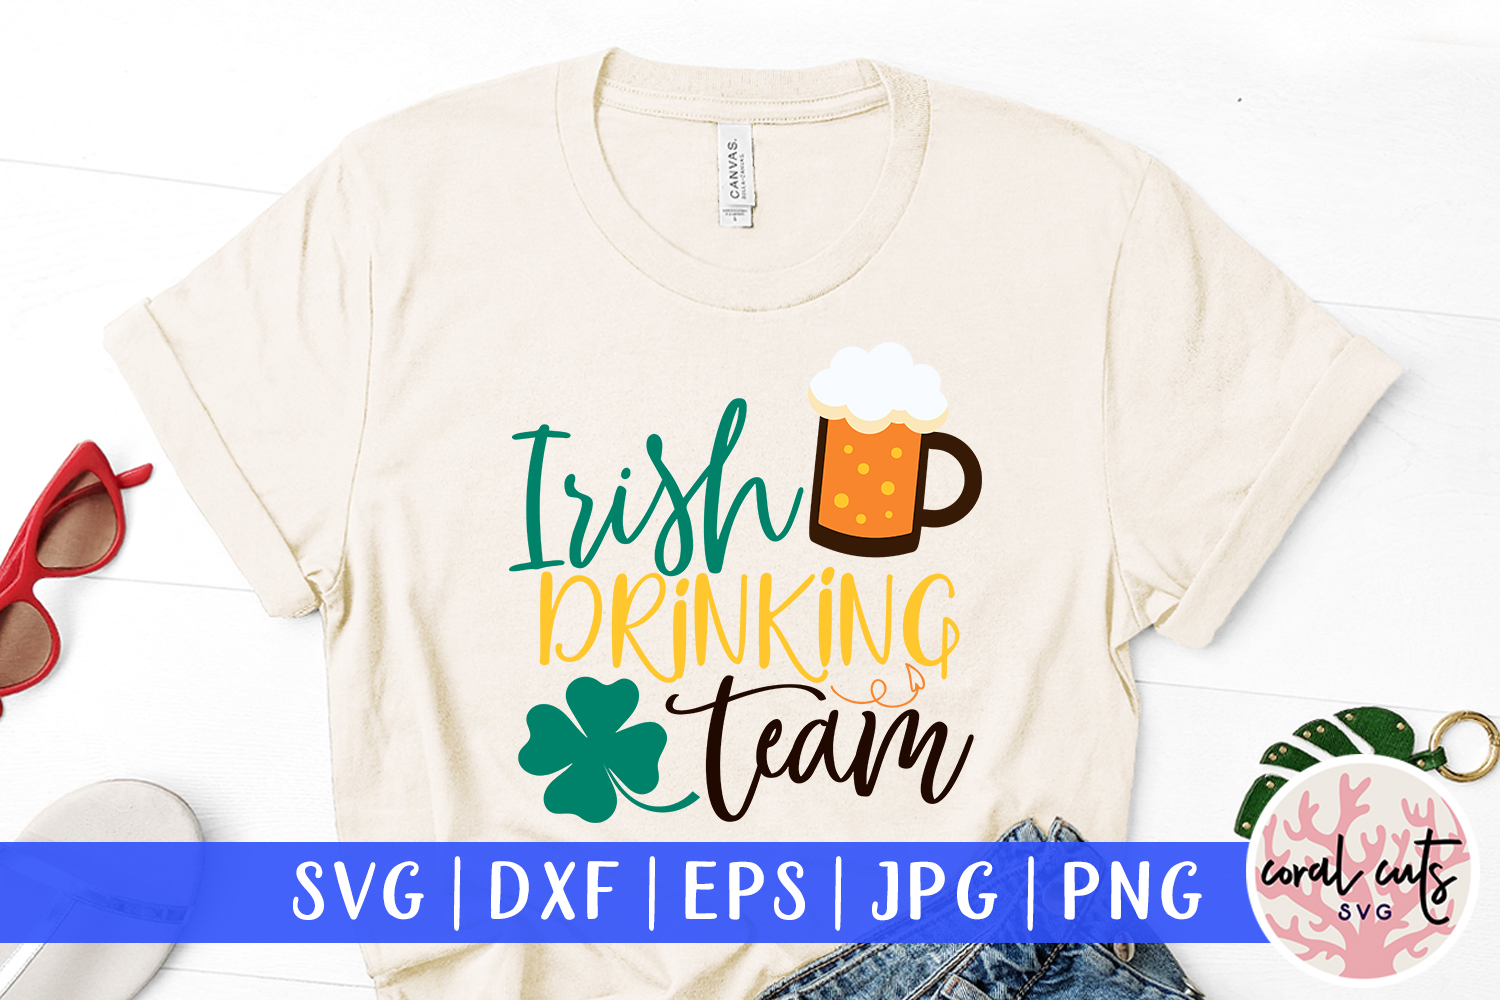 Download Free Irish Drinking Team Svg Cut File Graphic By Coralcutssvg for Cricut Explore, Silhouette and other cutting machines.